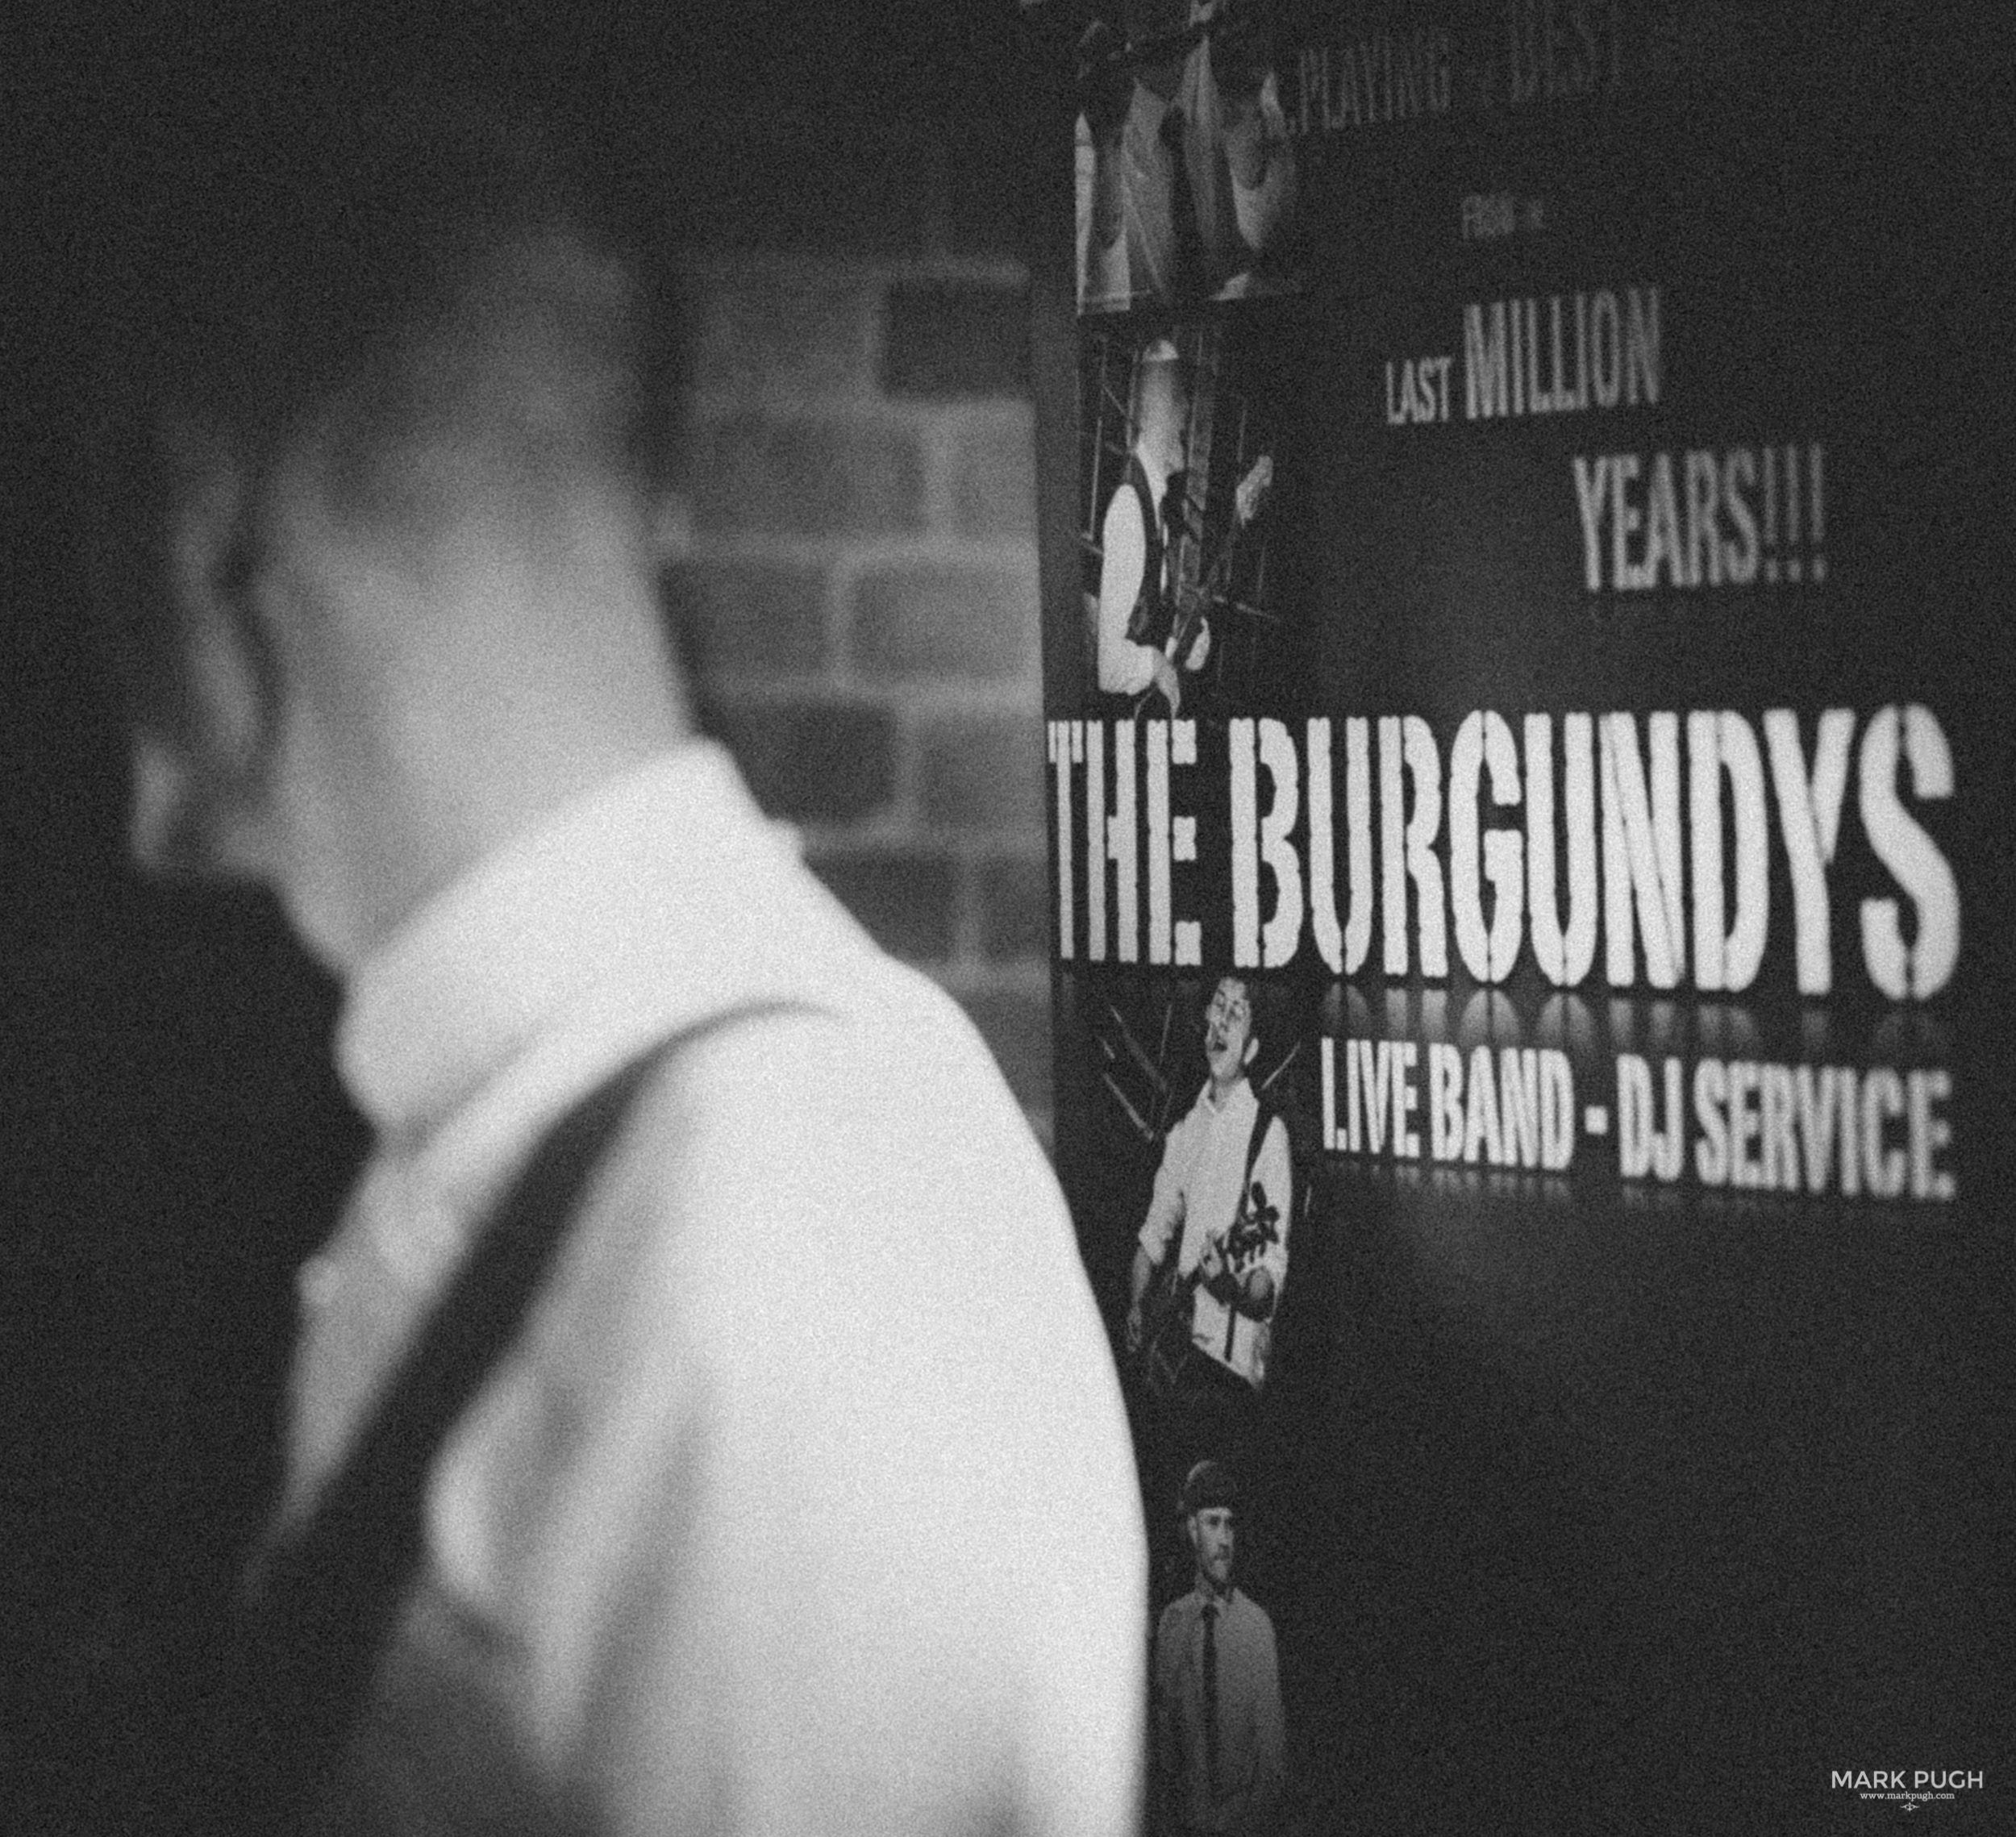 001 - Featured Business - The Burgundys based in Nottingham UK - Photography by www.markpugh.com -2.JPG